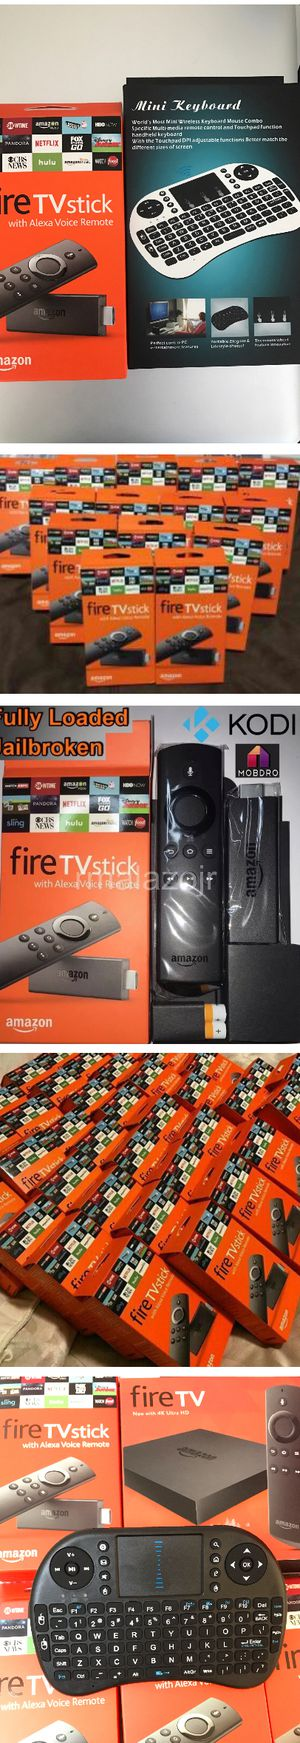 Amazon Fire TV Stick Firestick Unlocked / Jailbroken / Fully Loaded w Live Tv Movies TV Shows Music Radio PPV Events better than Android TV Box for Sale in Las Vegas, NV